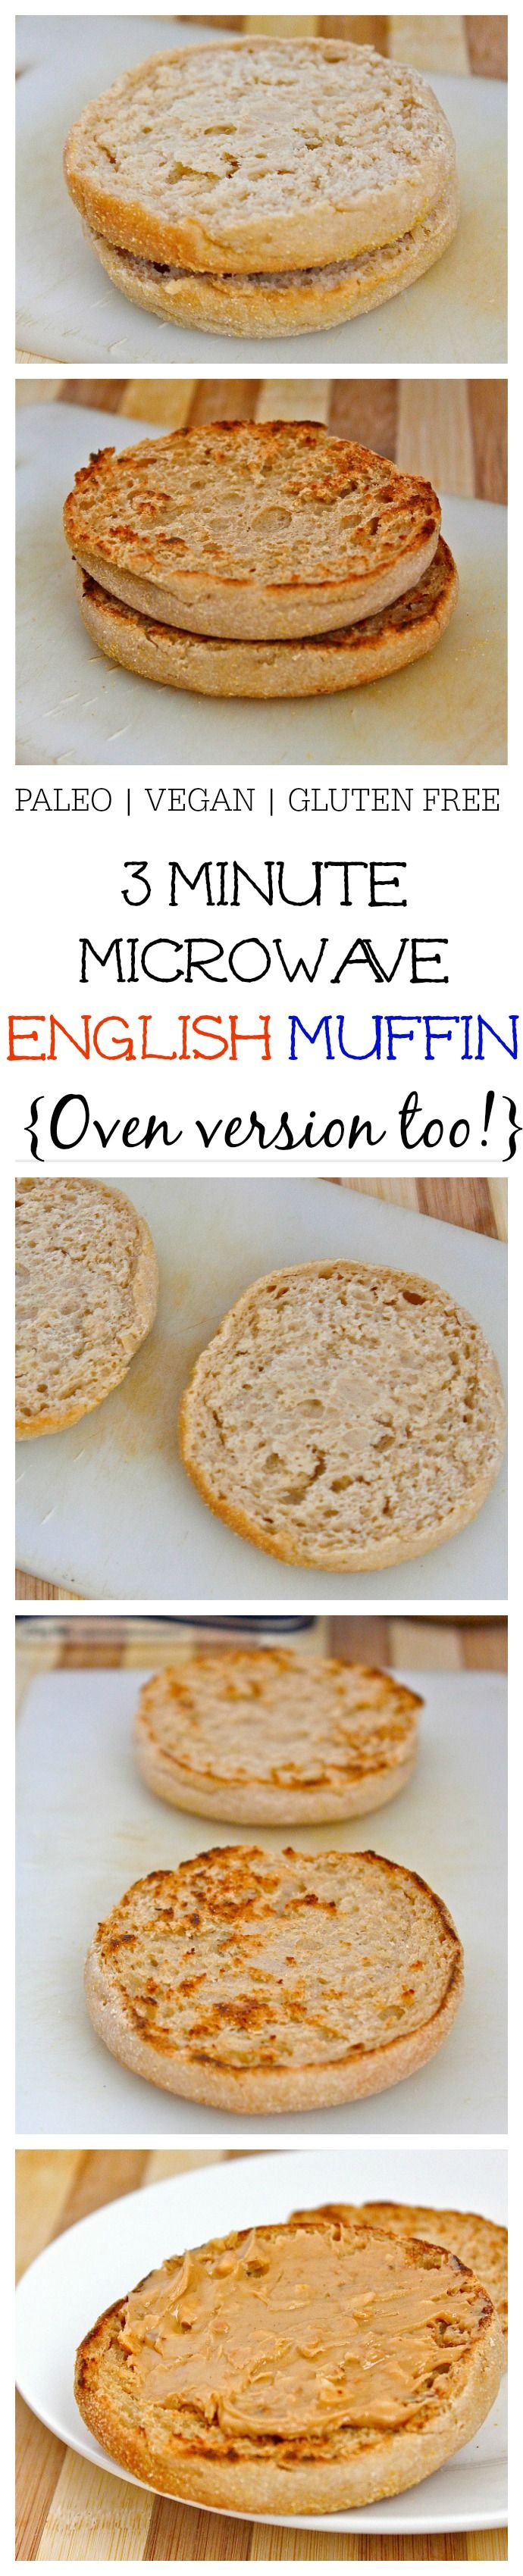 3 Minute Microwave English Muffin (Paleo, Vegan AND gluten free!)